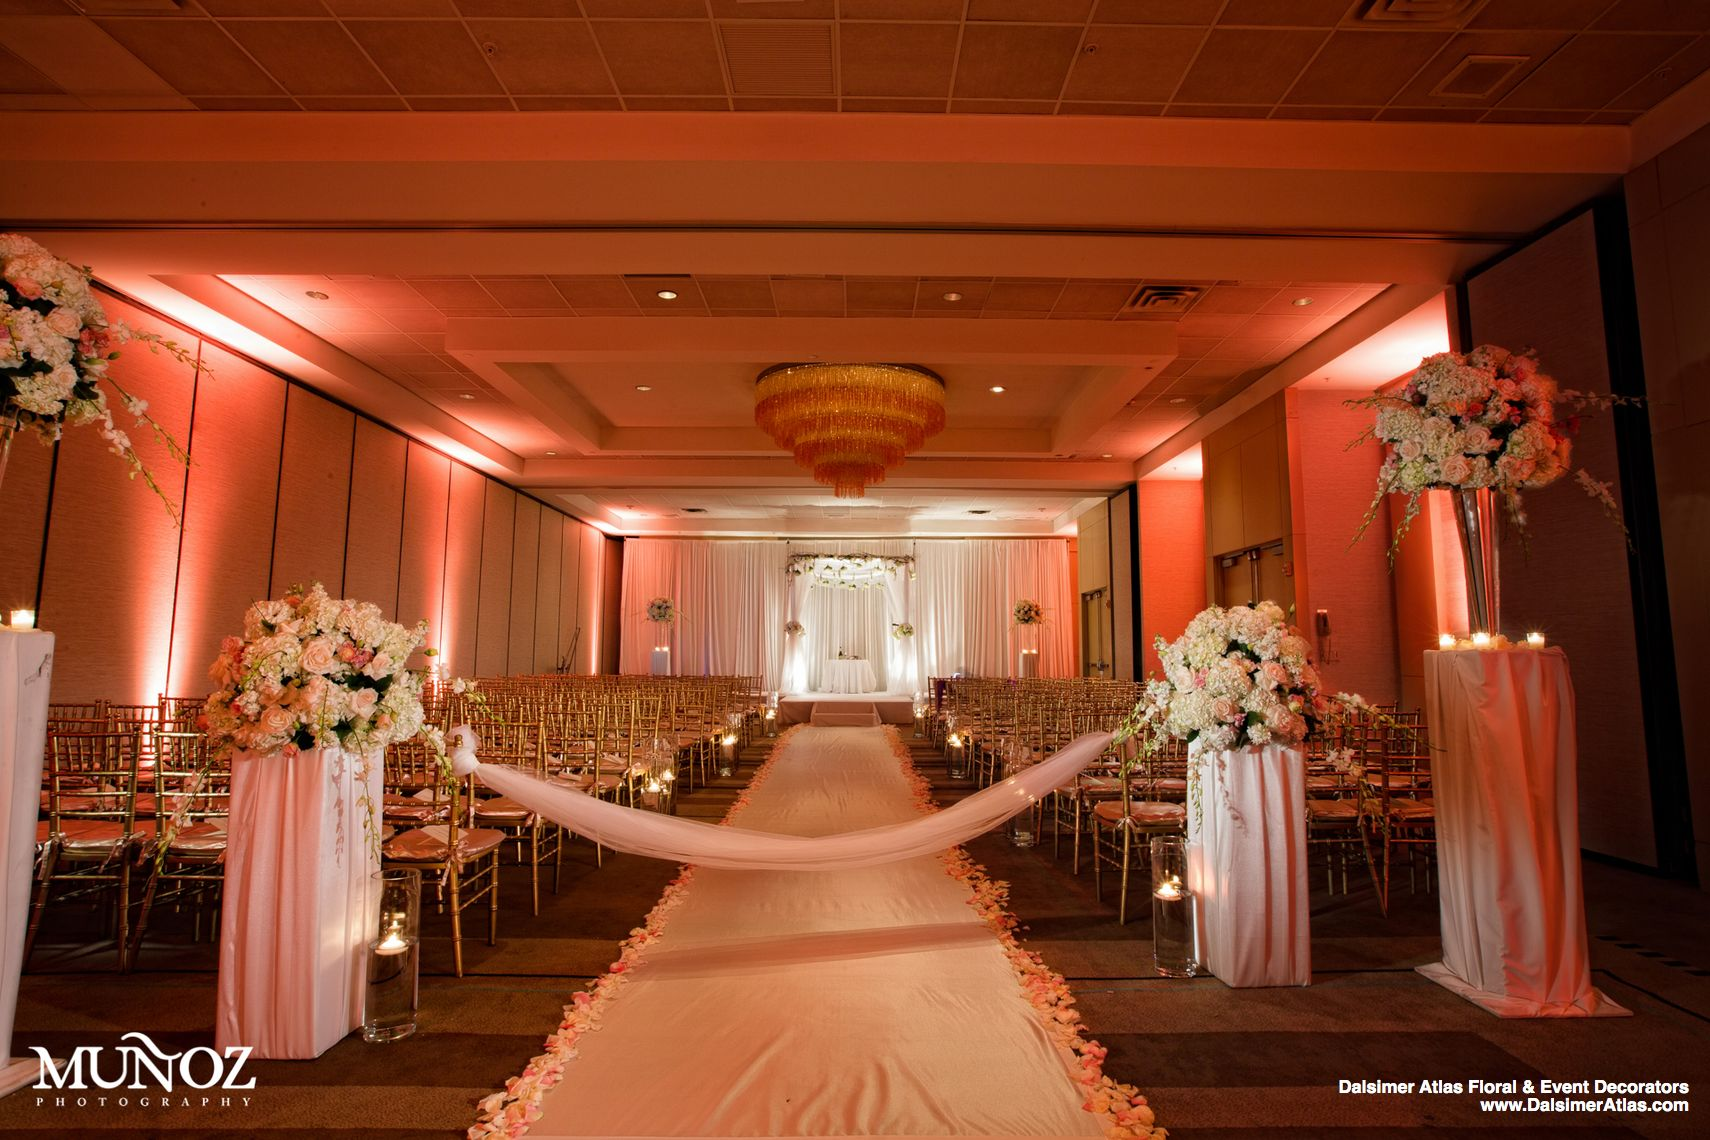 wedding-florist-flowers-decorations-wedding-hilton-fort-lauderdale-marina-florida-dalsimer-atlas-6